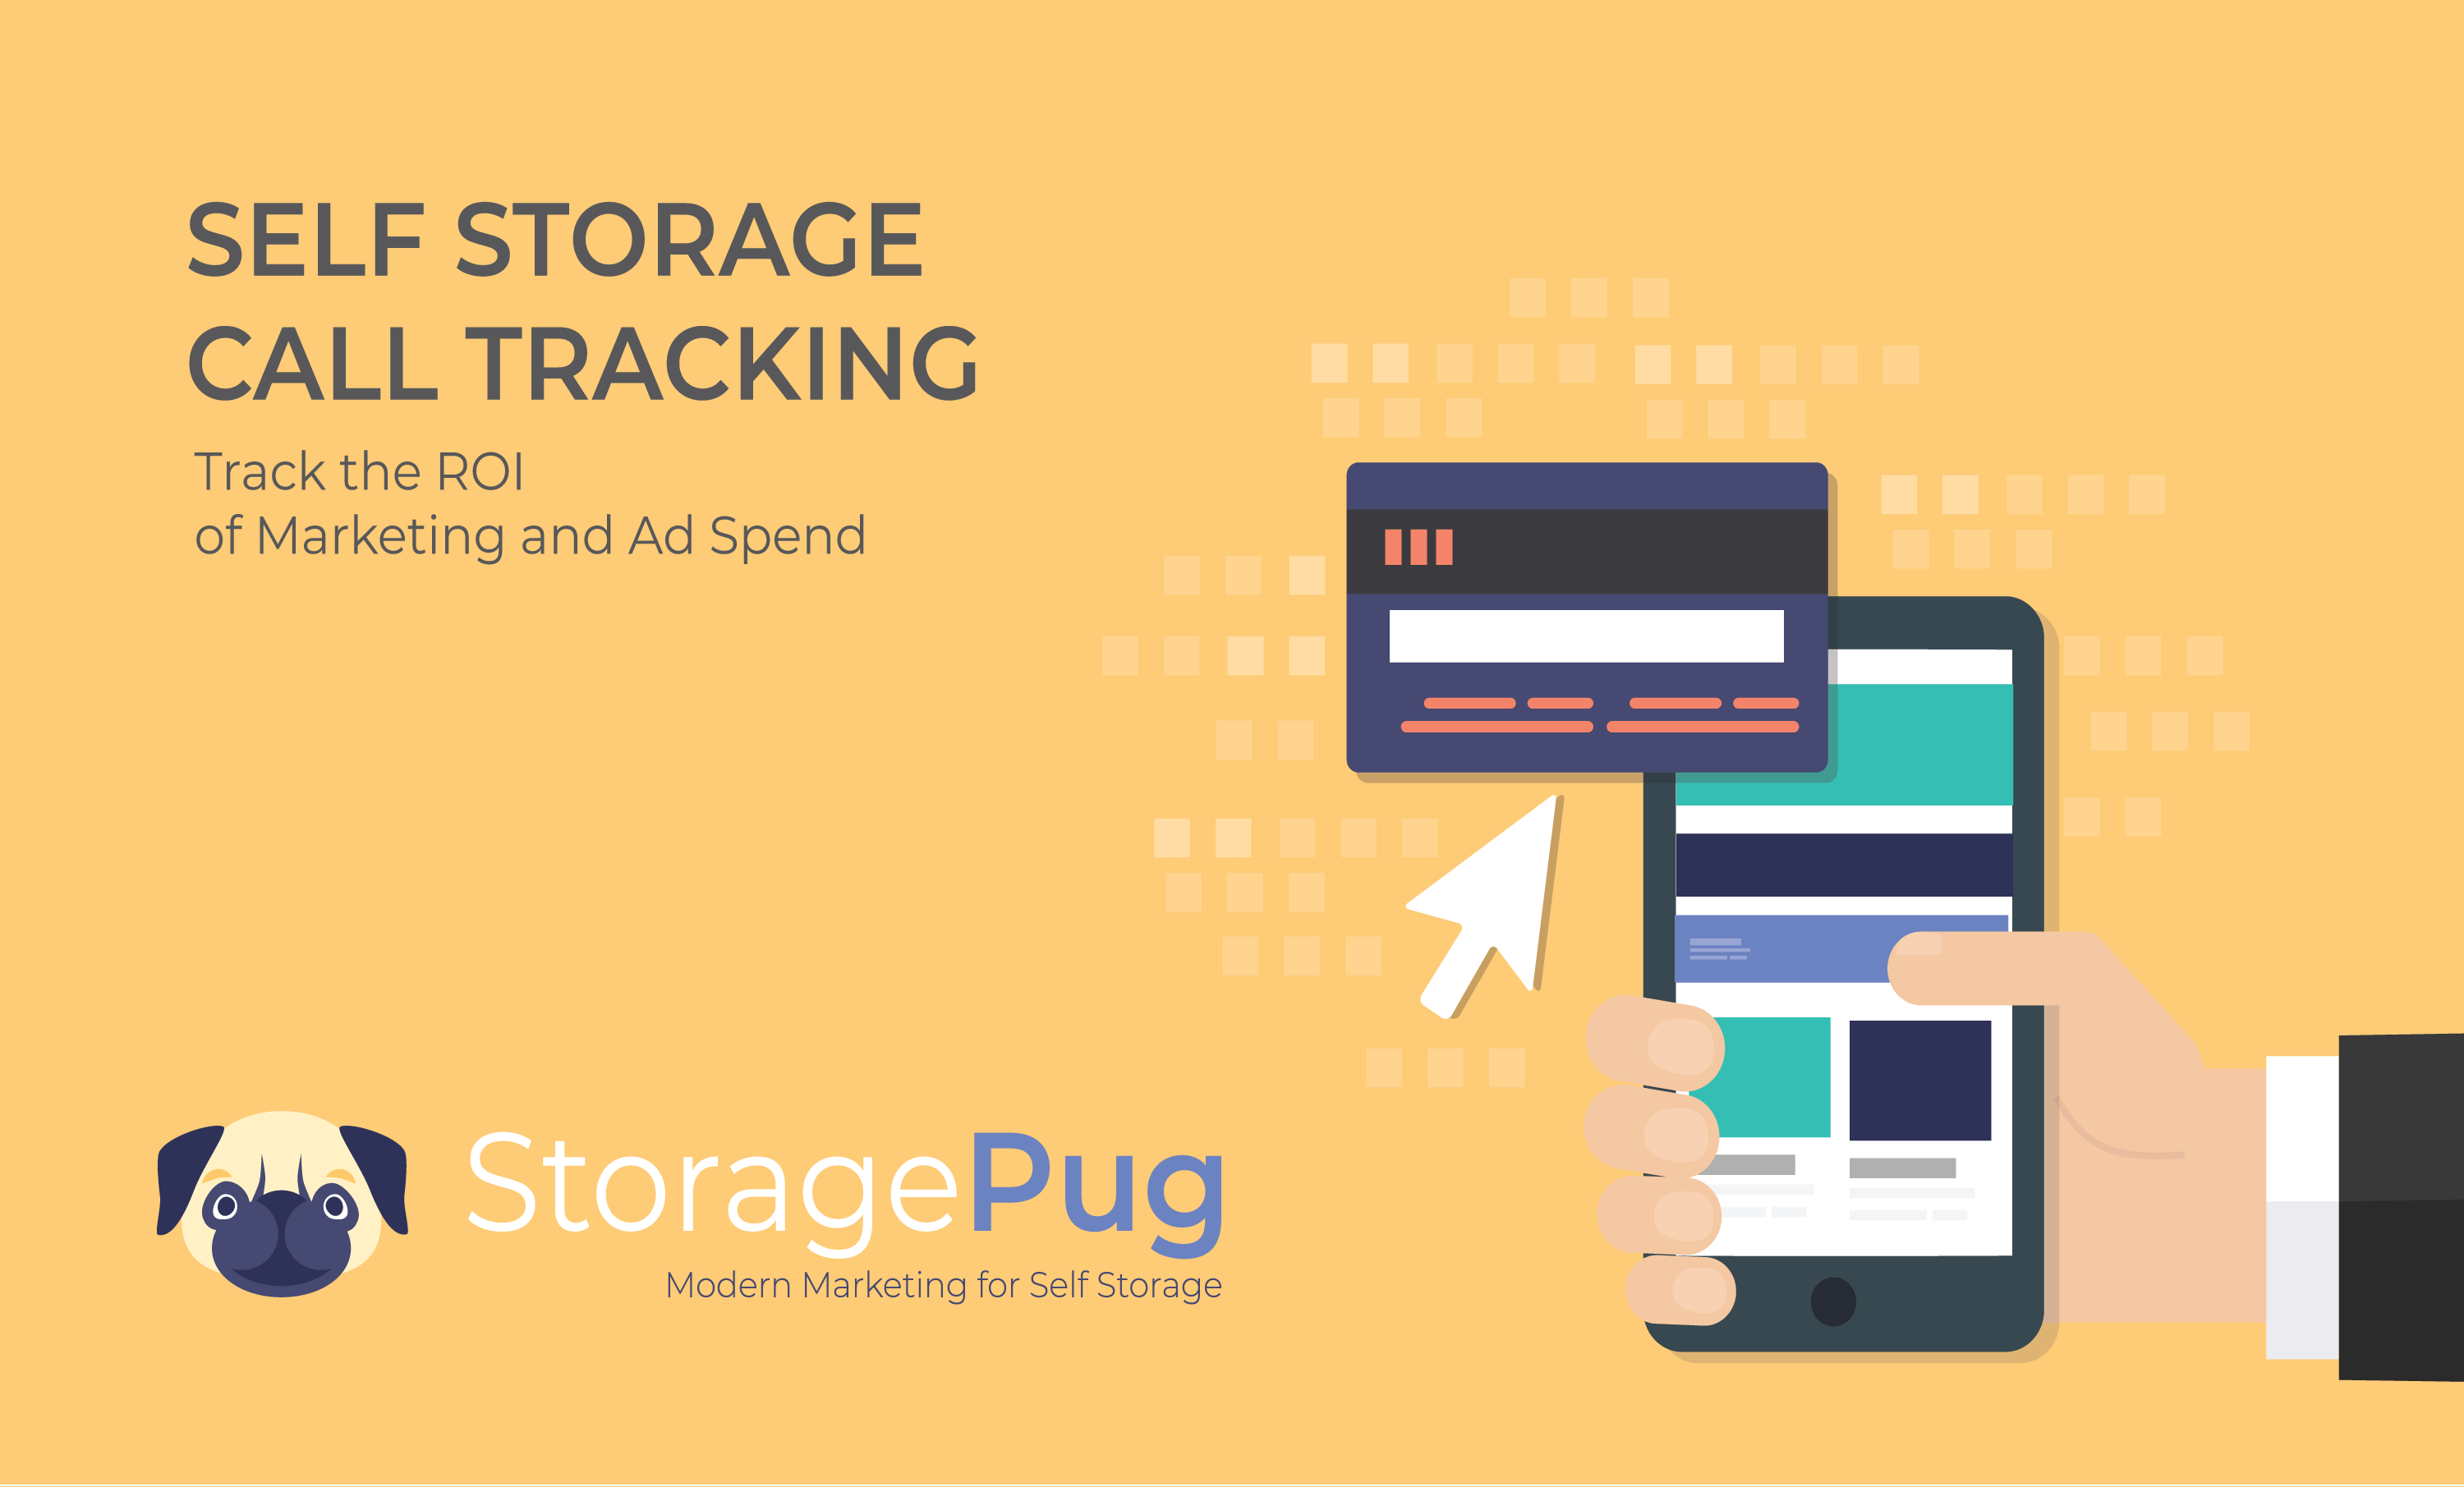 Call tracking software allows you to track the ROI of your marketing tactics and ad spend, It is an investment worth pursuing for your storage facility.